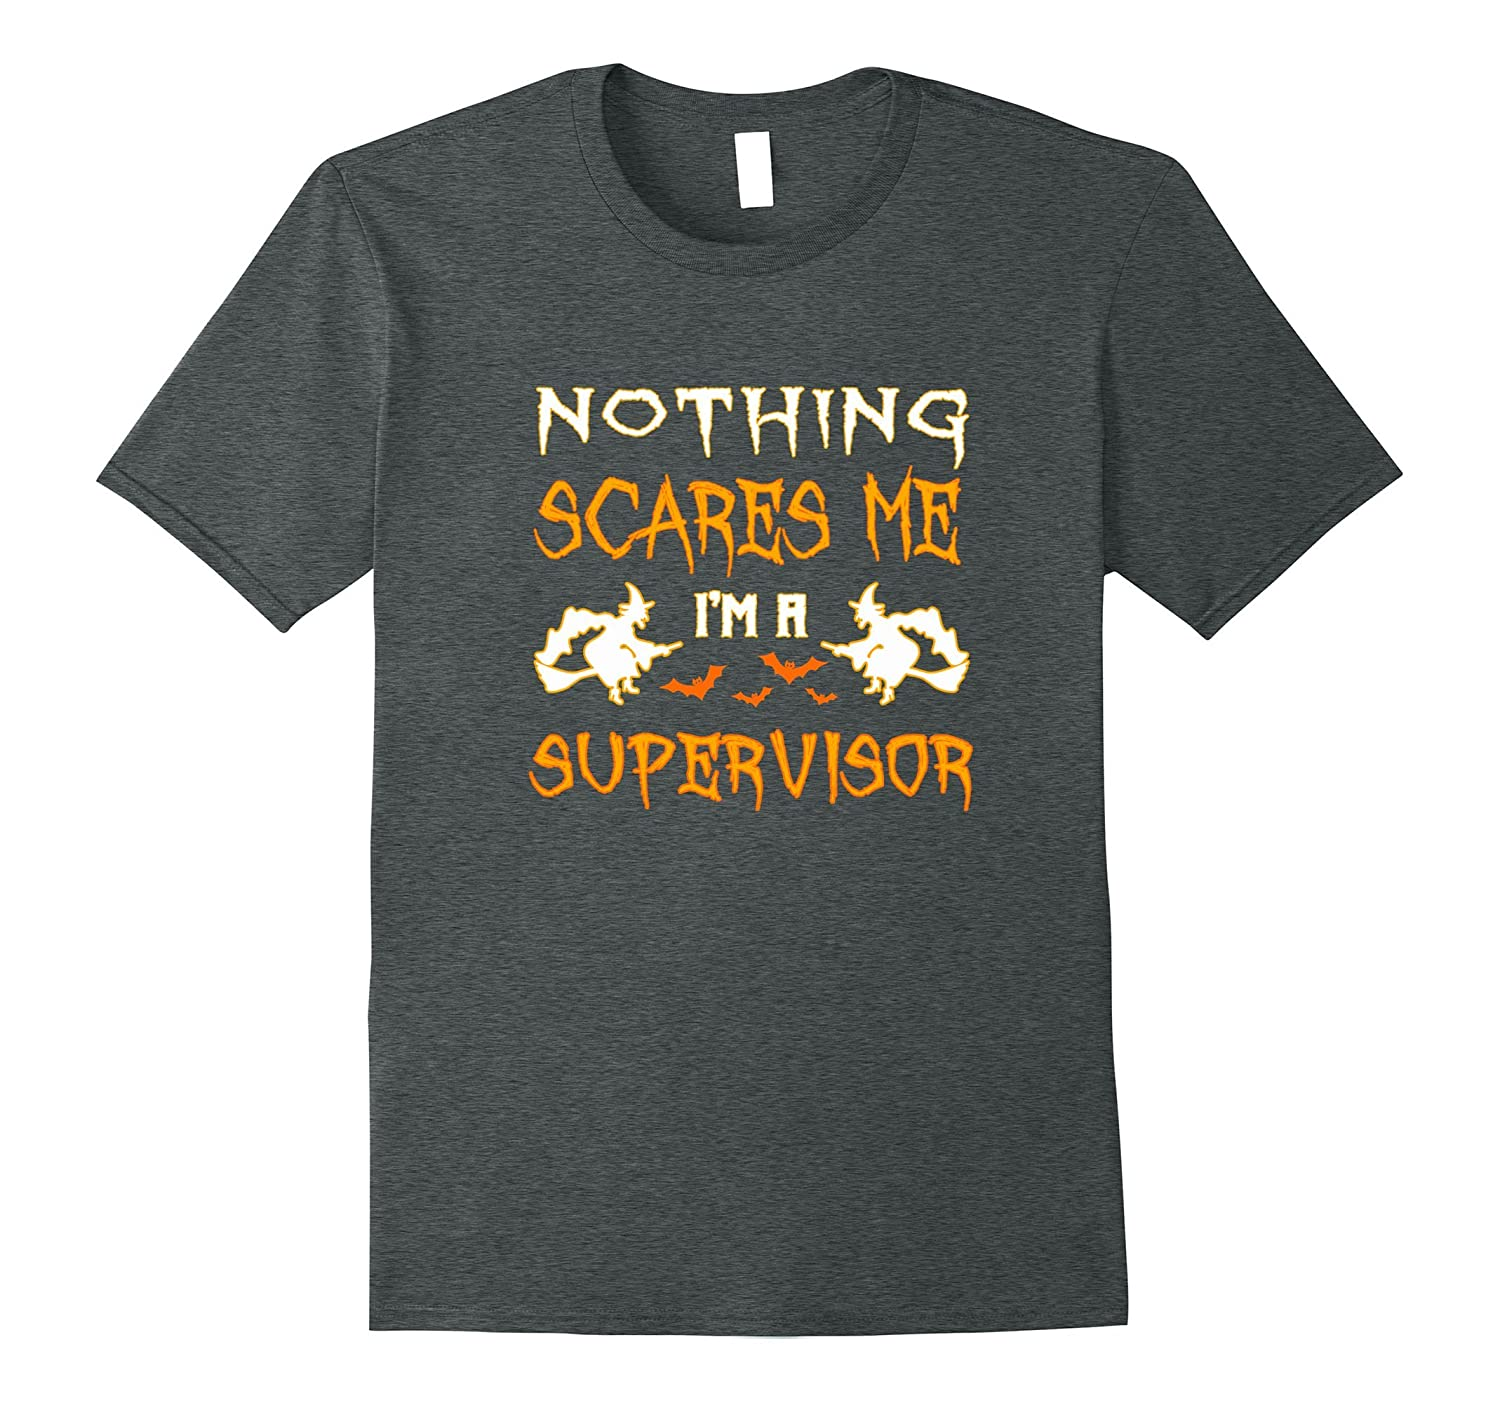 Nothing scares me I'm a supervisor Halloween gift t-shirt